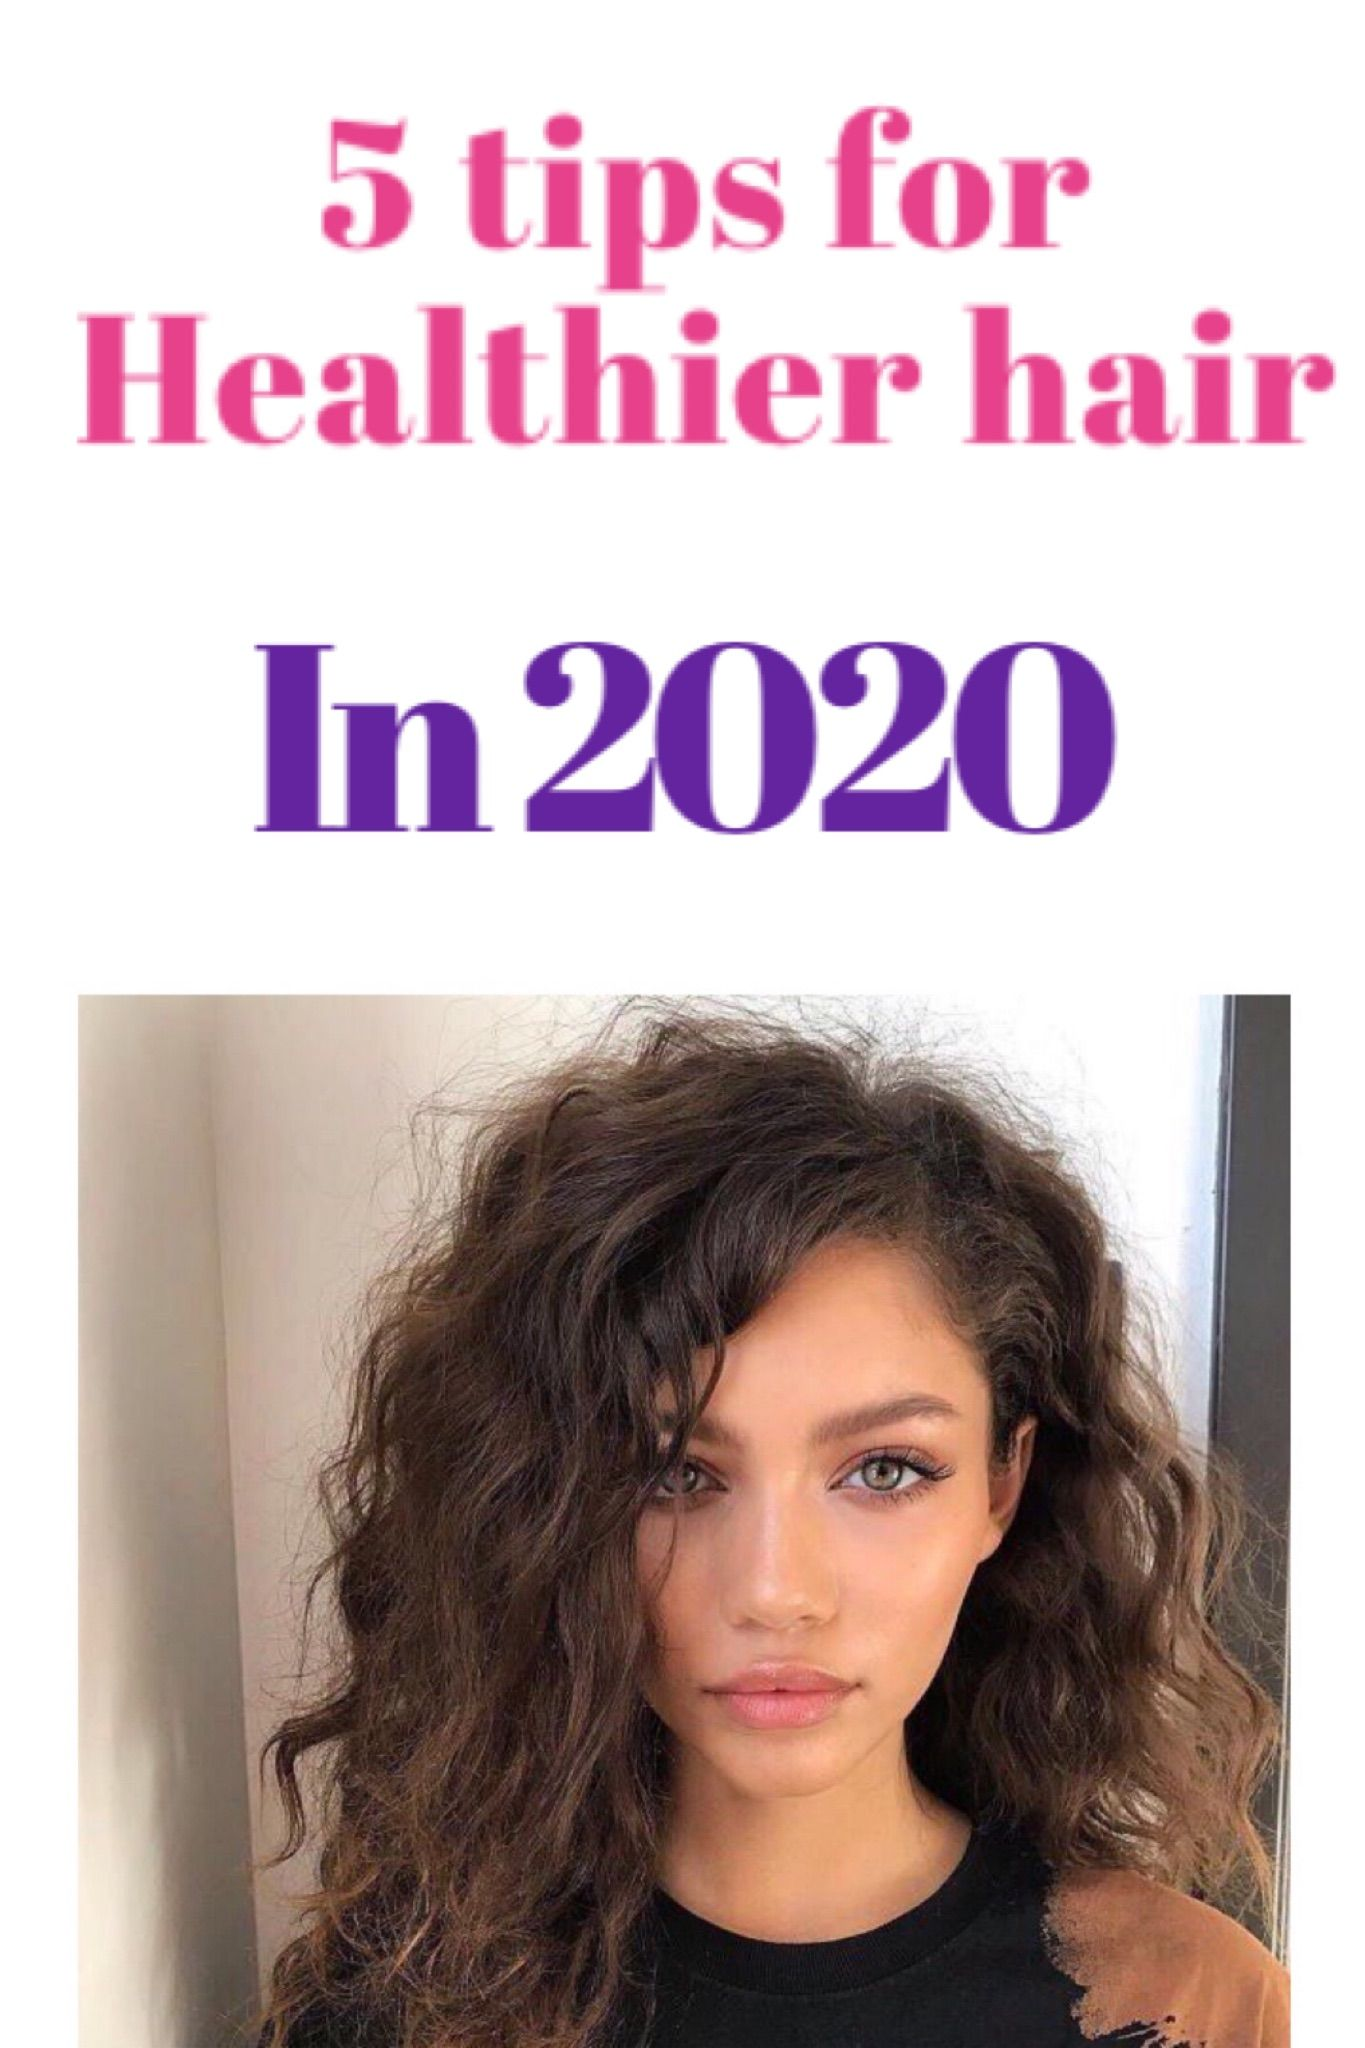 People love what our hair oil has done to their hair so we decided to show you 5 easy ways to get healthier hair! #hair #haircare #hairgrowth #healthyhair #healthyhairjourney  #hairgrowthtips #hairtransformation  #naturalhair #longhair #curlyhair #naturalhairproducts #hairproducts #hair